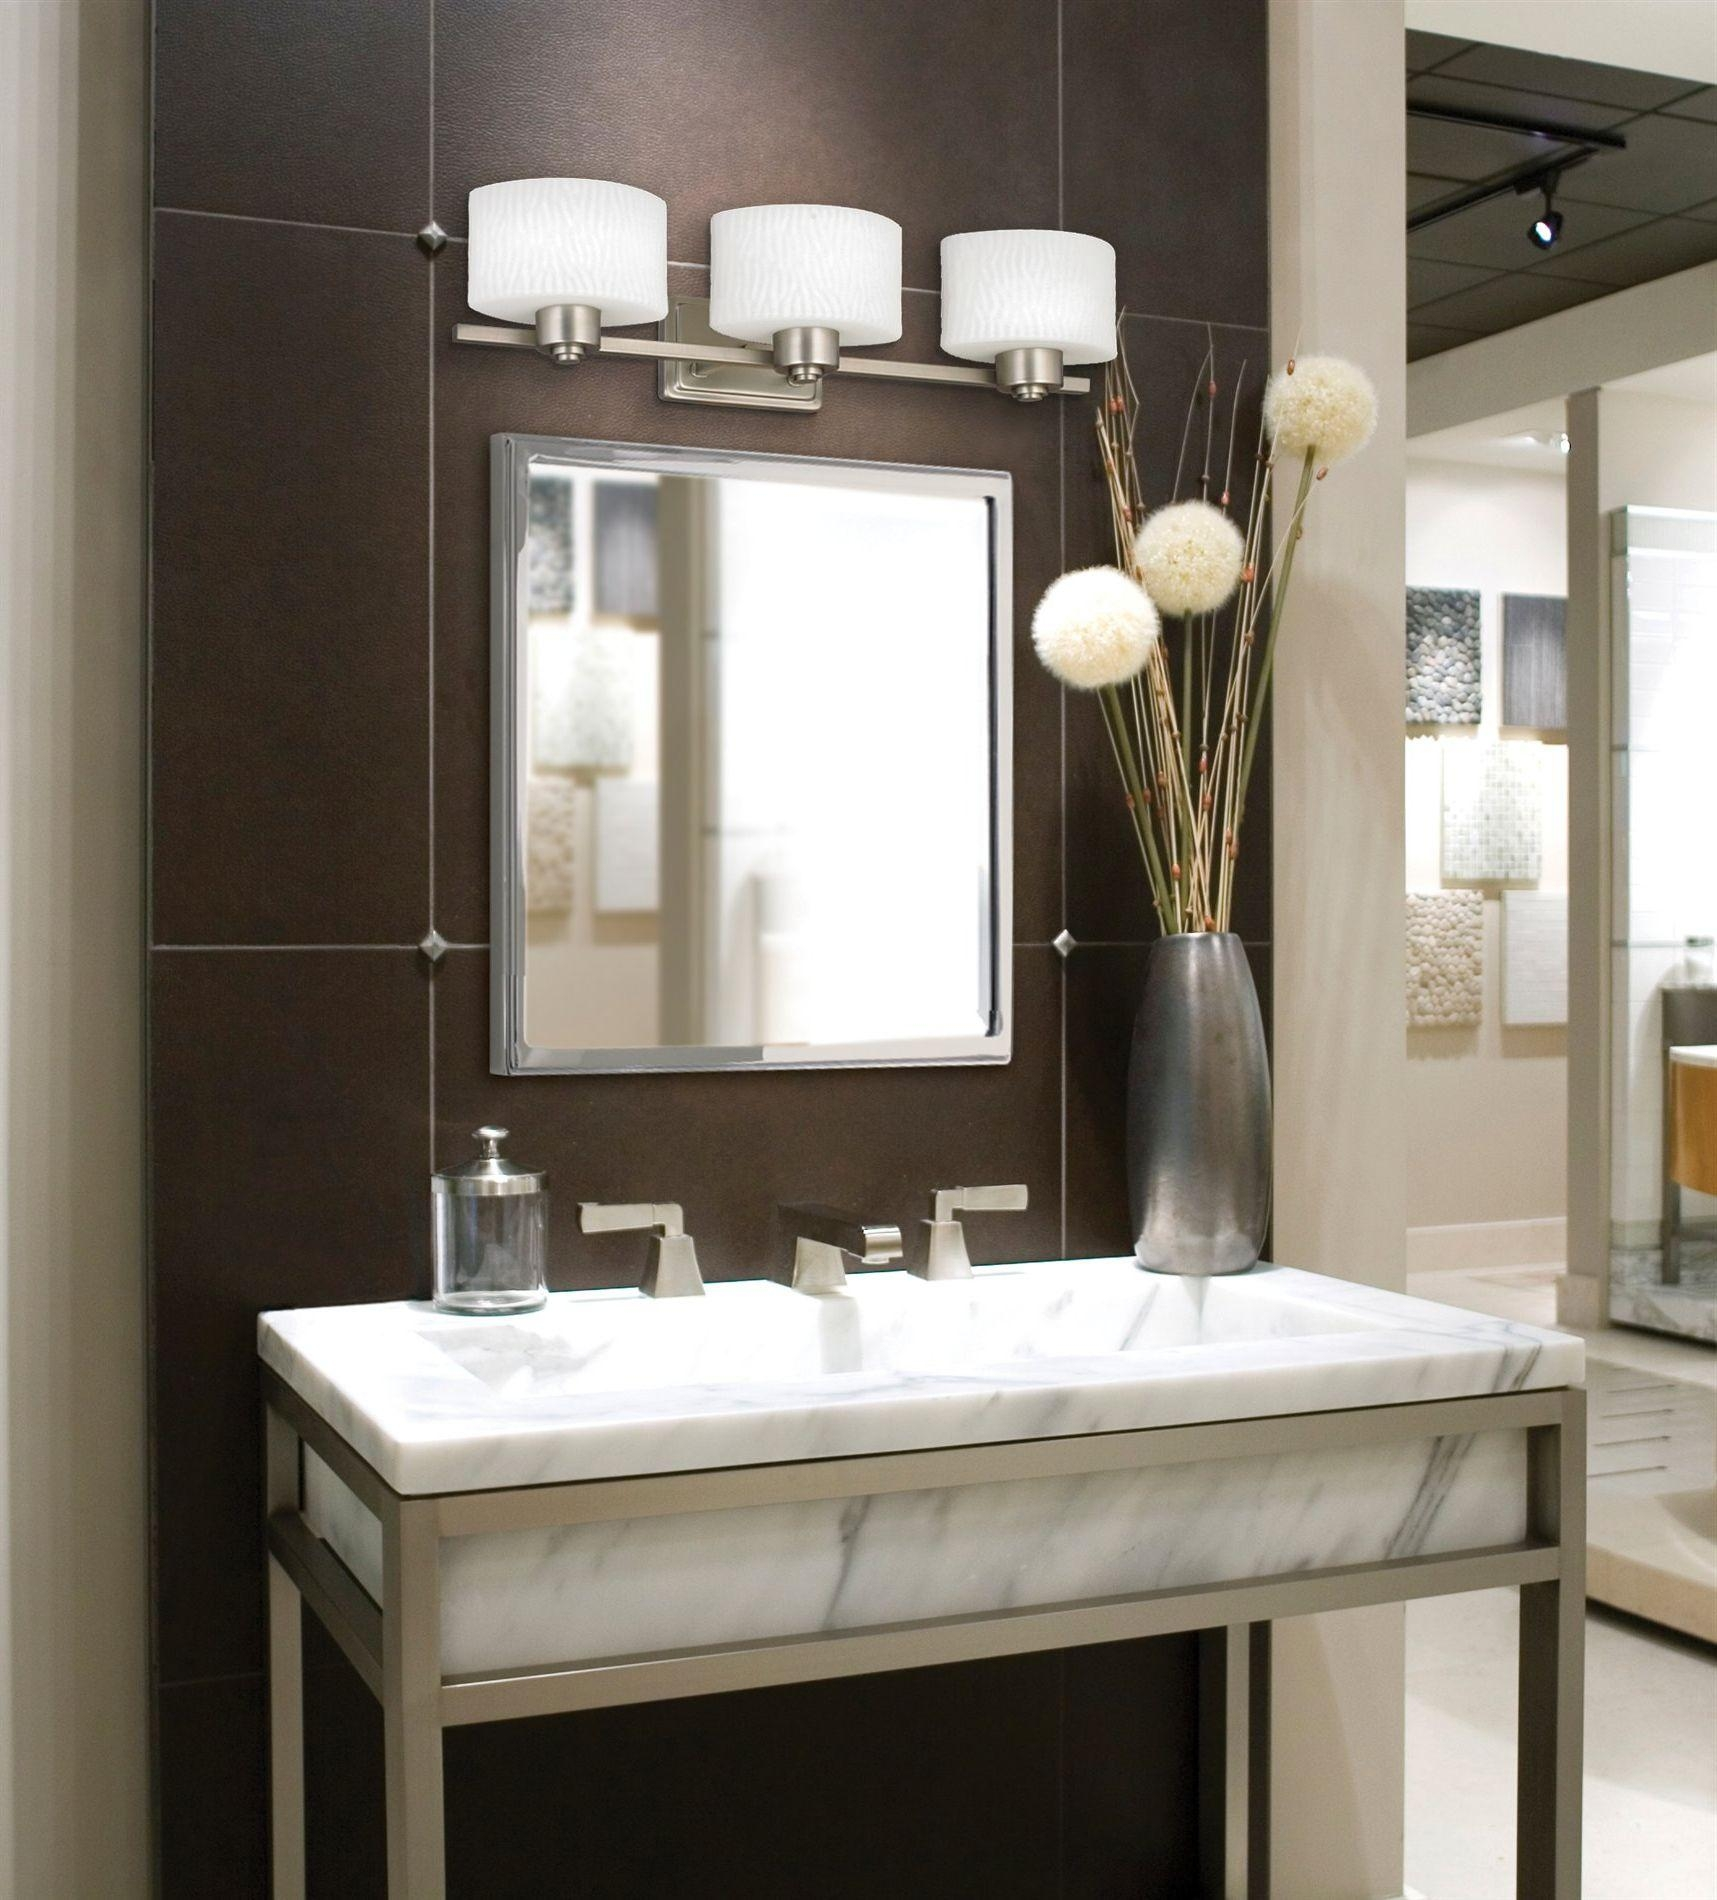 Bathroom Lighting Ideas: 20+ Bathroom Mirrors Ideas With Vanity